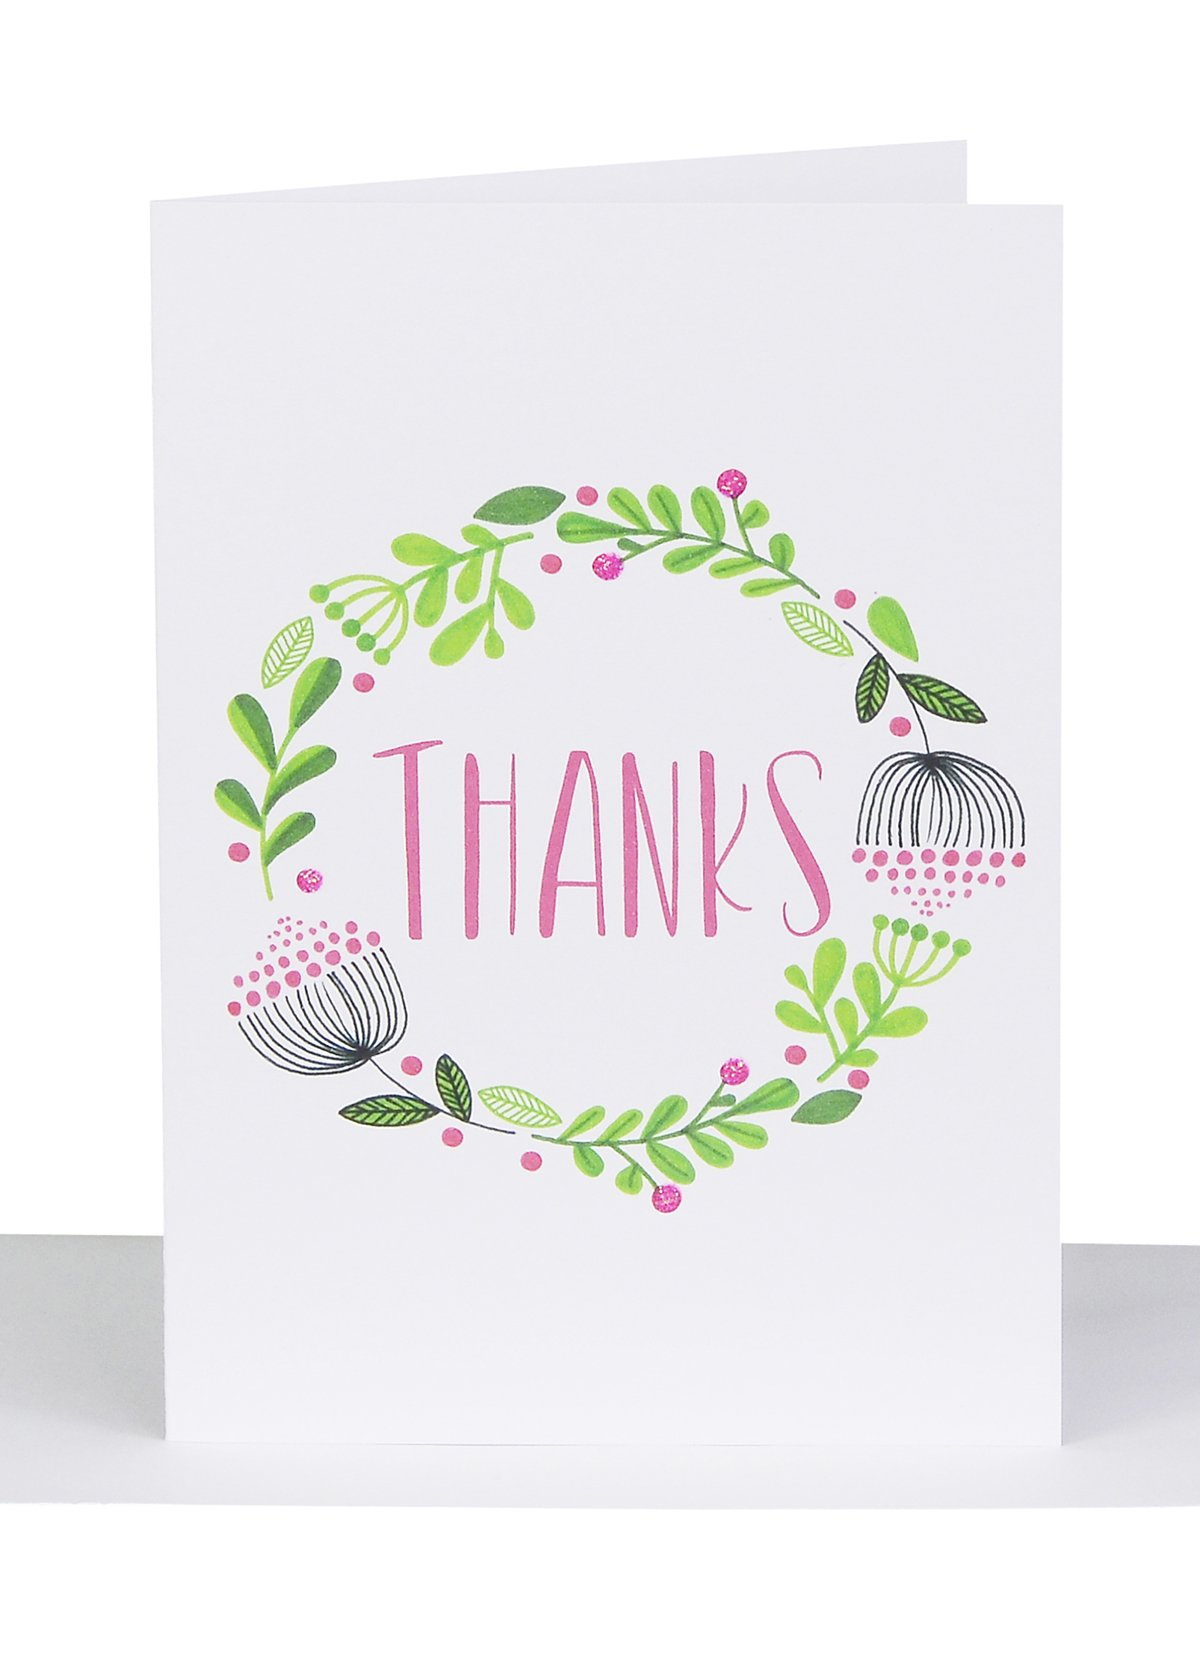 Wholesale thank you gift card lils wholesale cards sydney thank you gift cards m4hsunfo